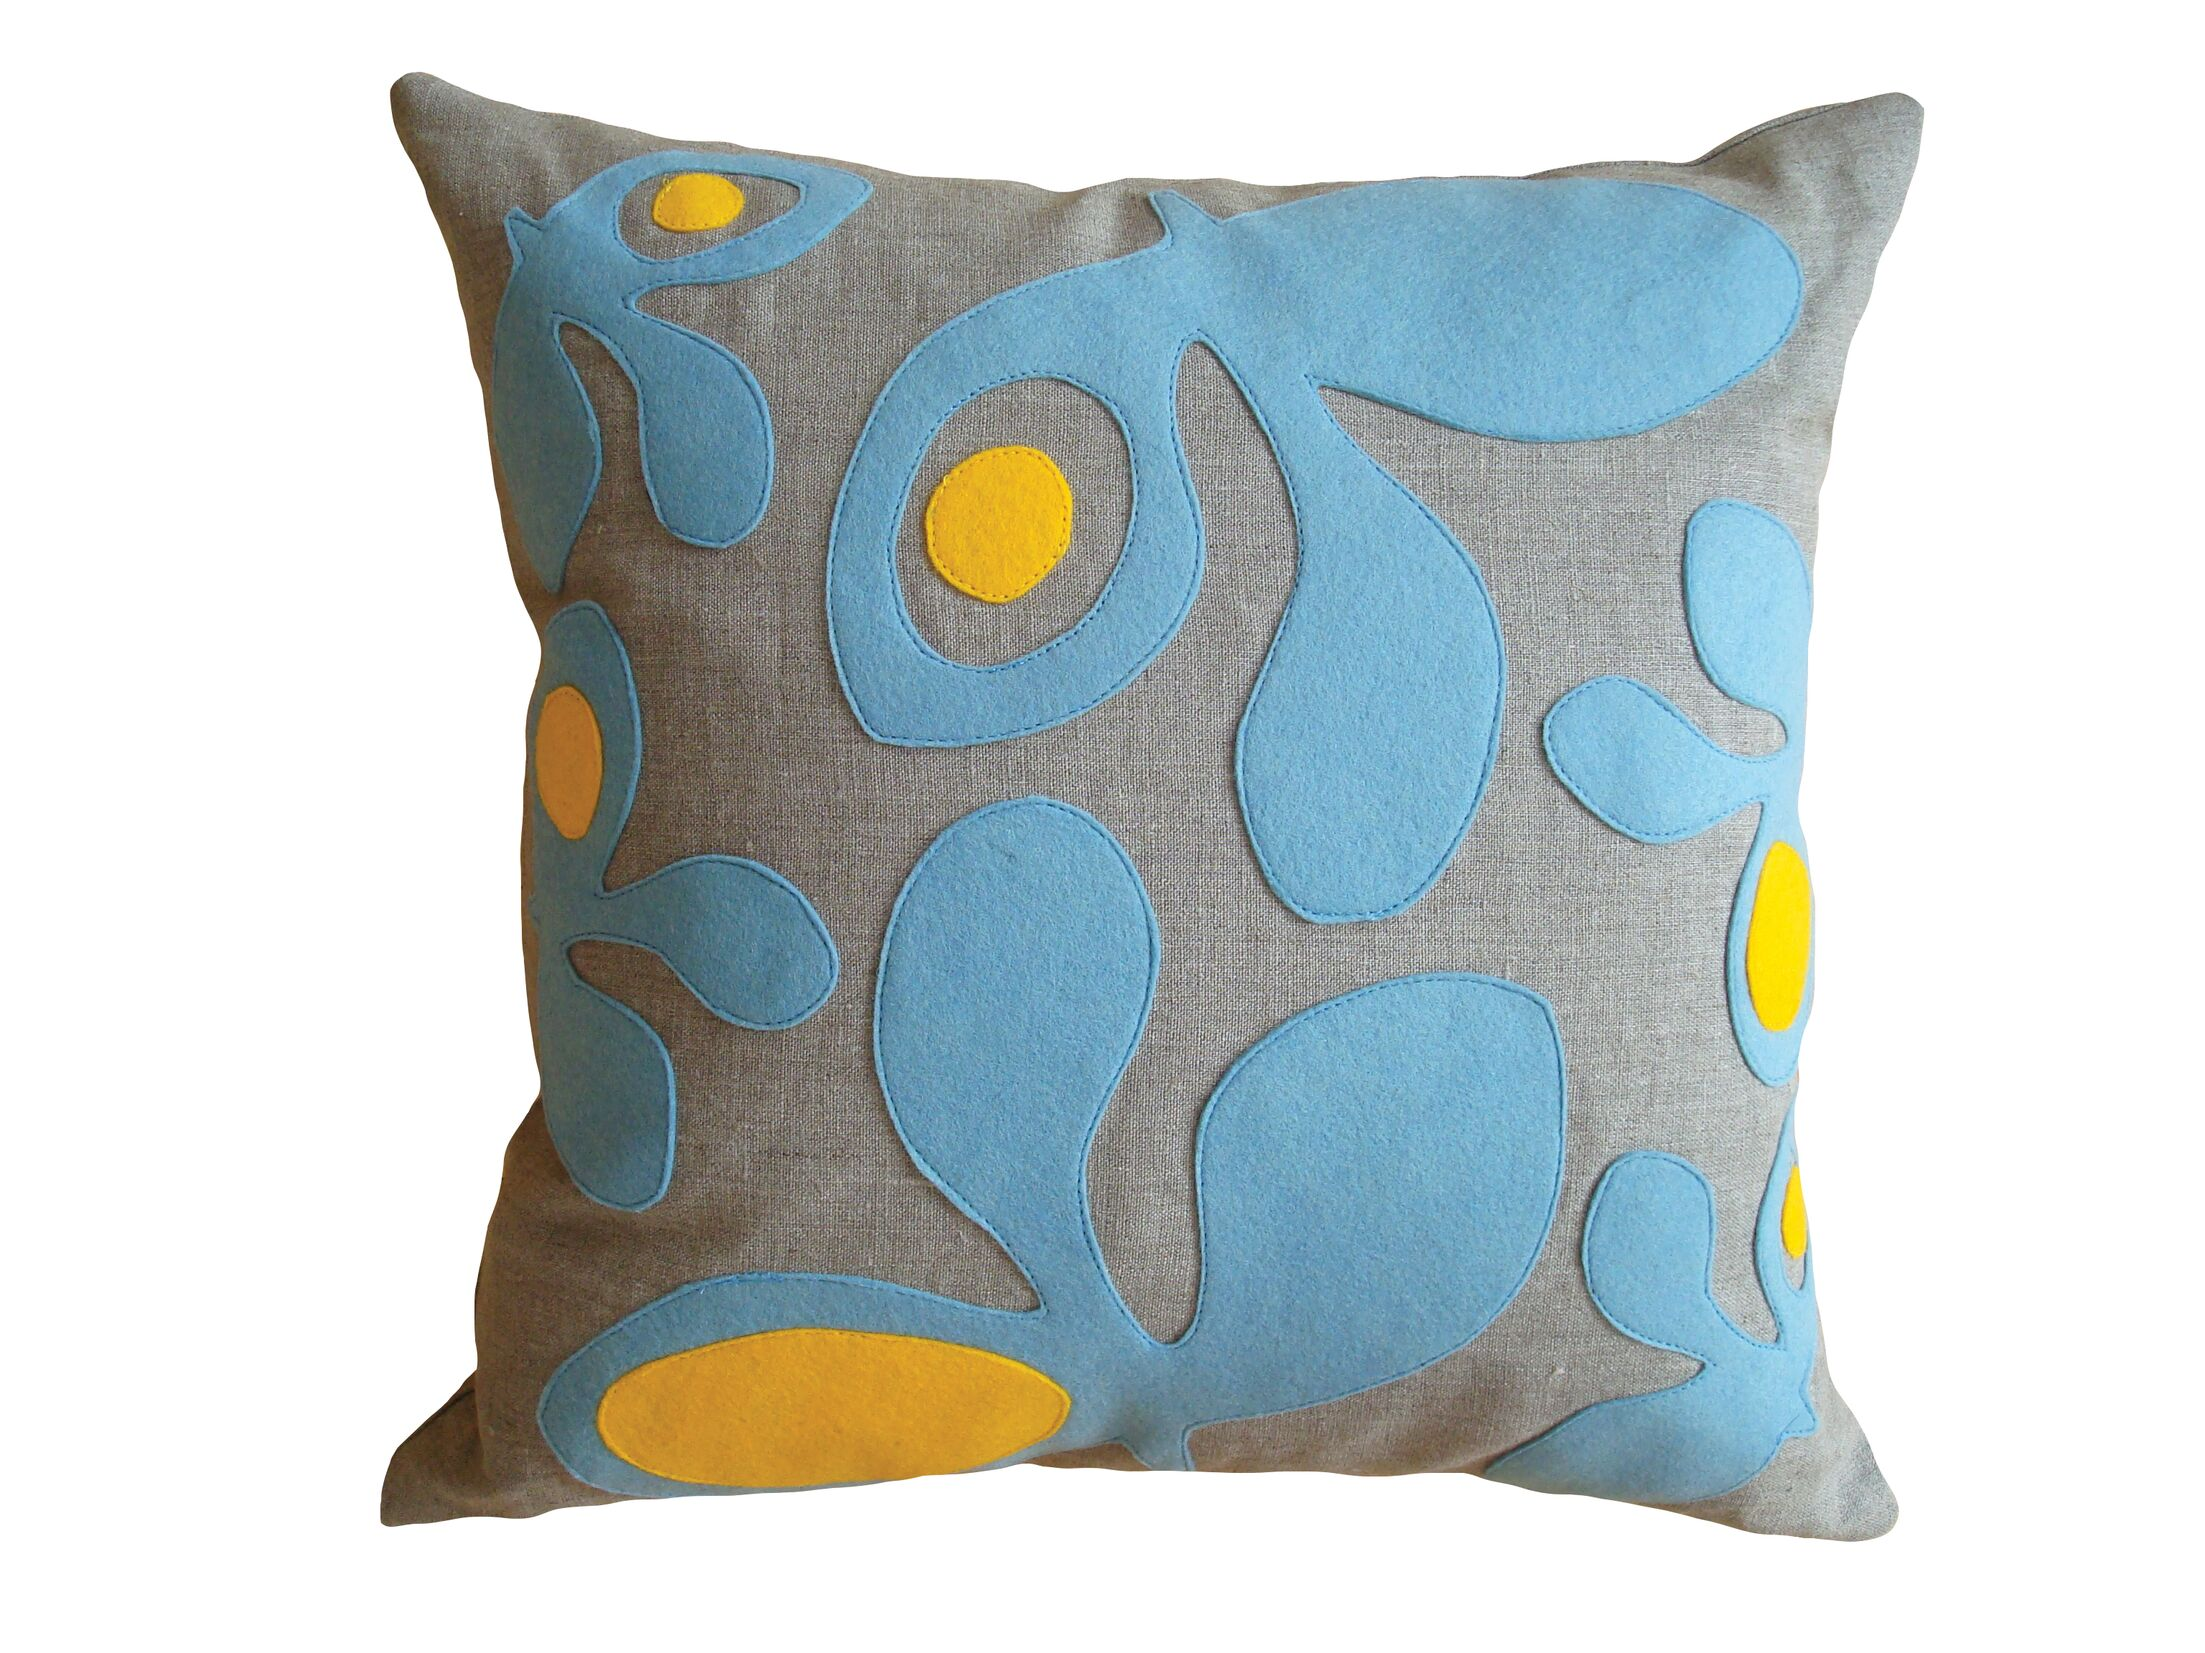 Applique Pods Linen Throw Pillow Color: Oatmeal Linen Fabric in Denim/Egg